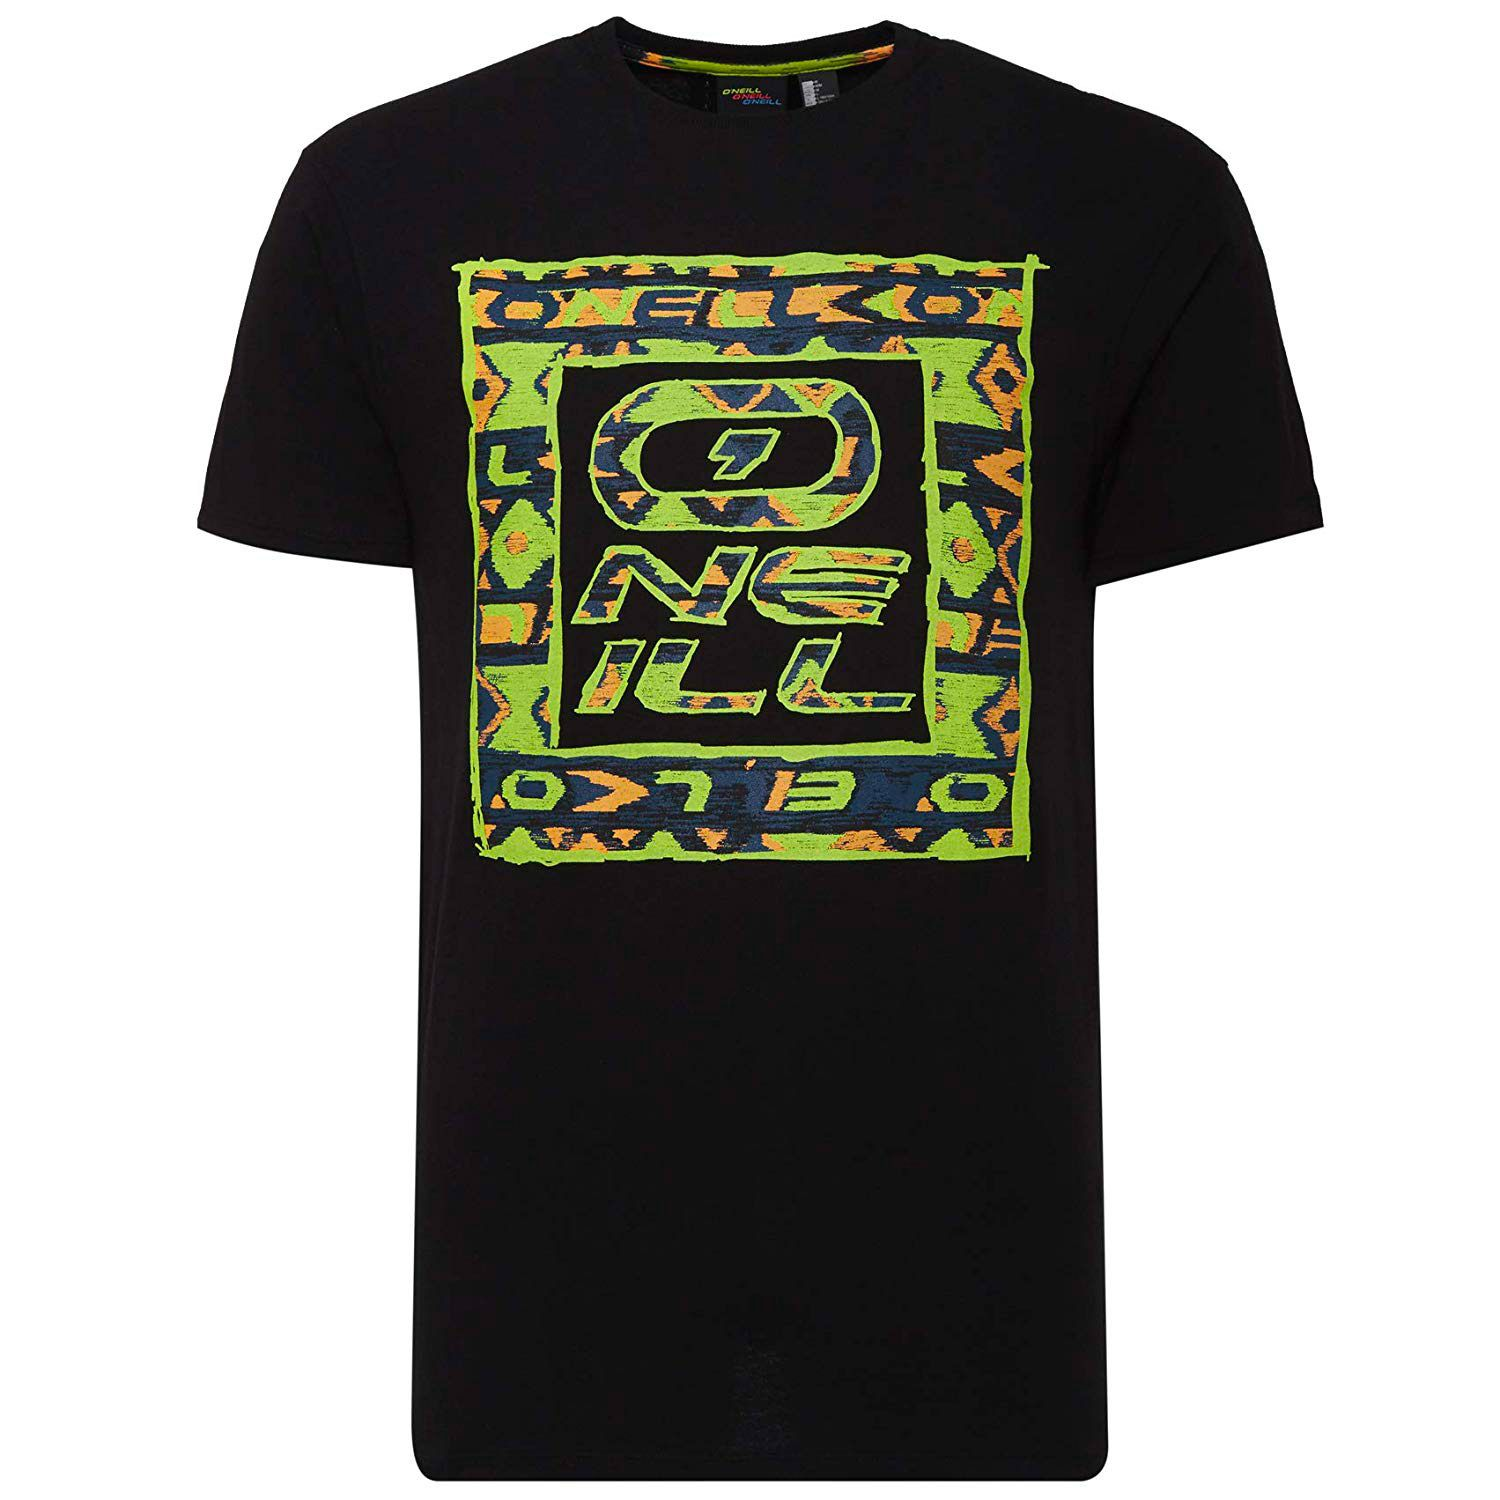 the re issue man t-shirt 9P2304